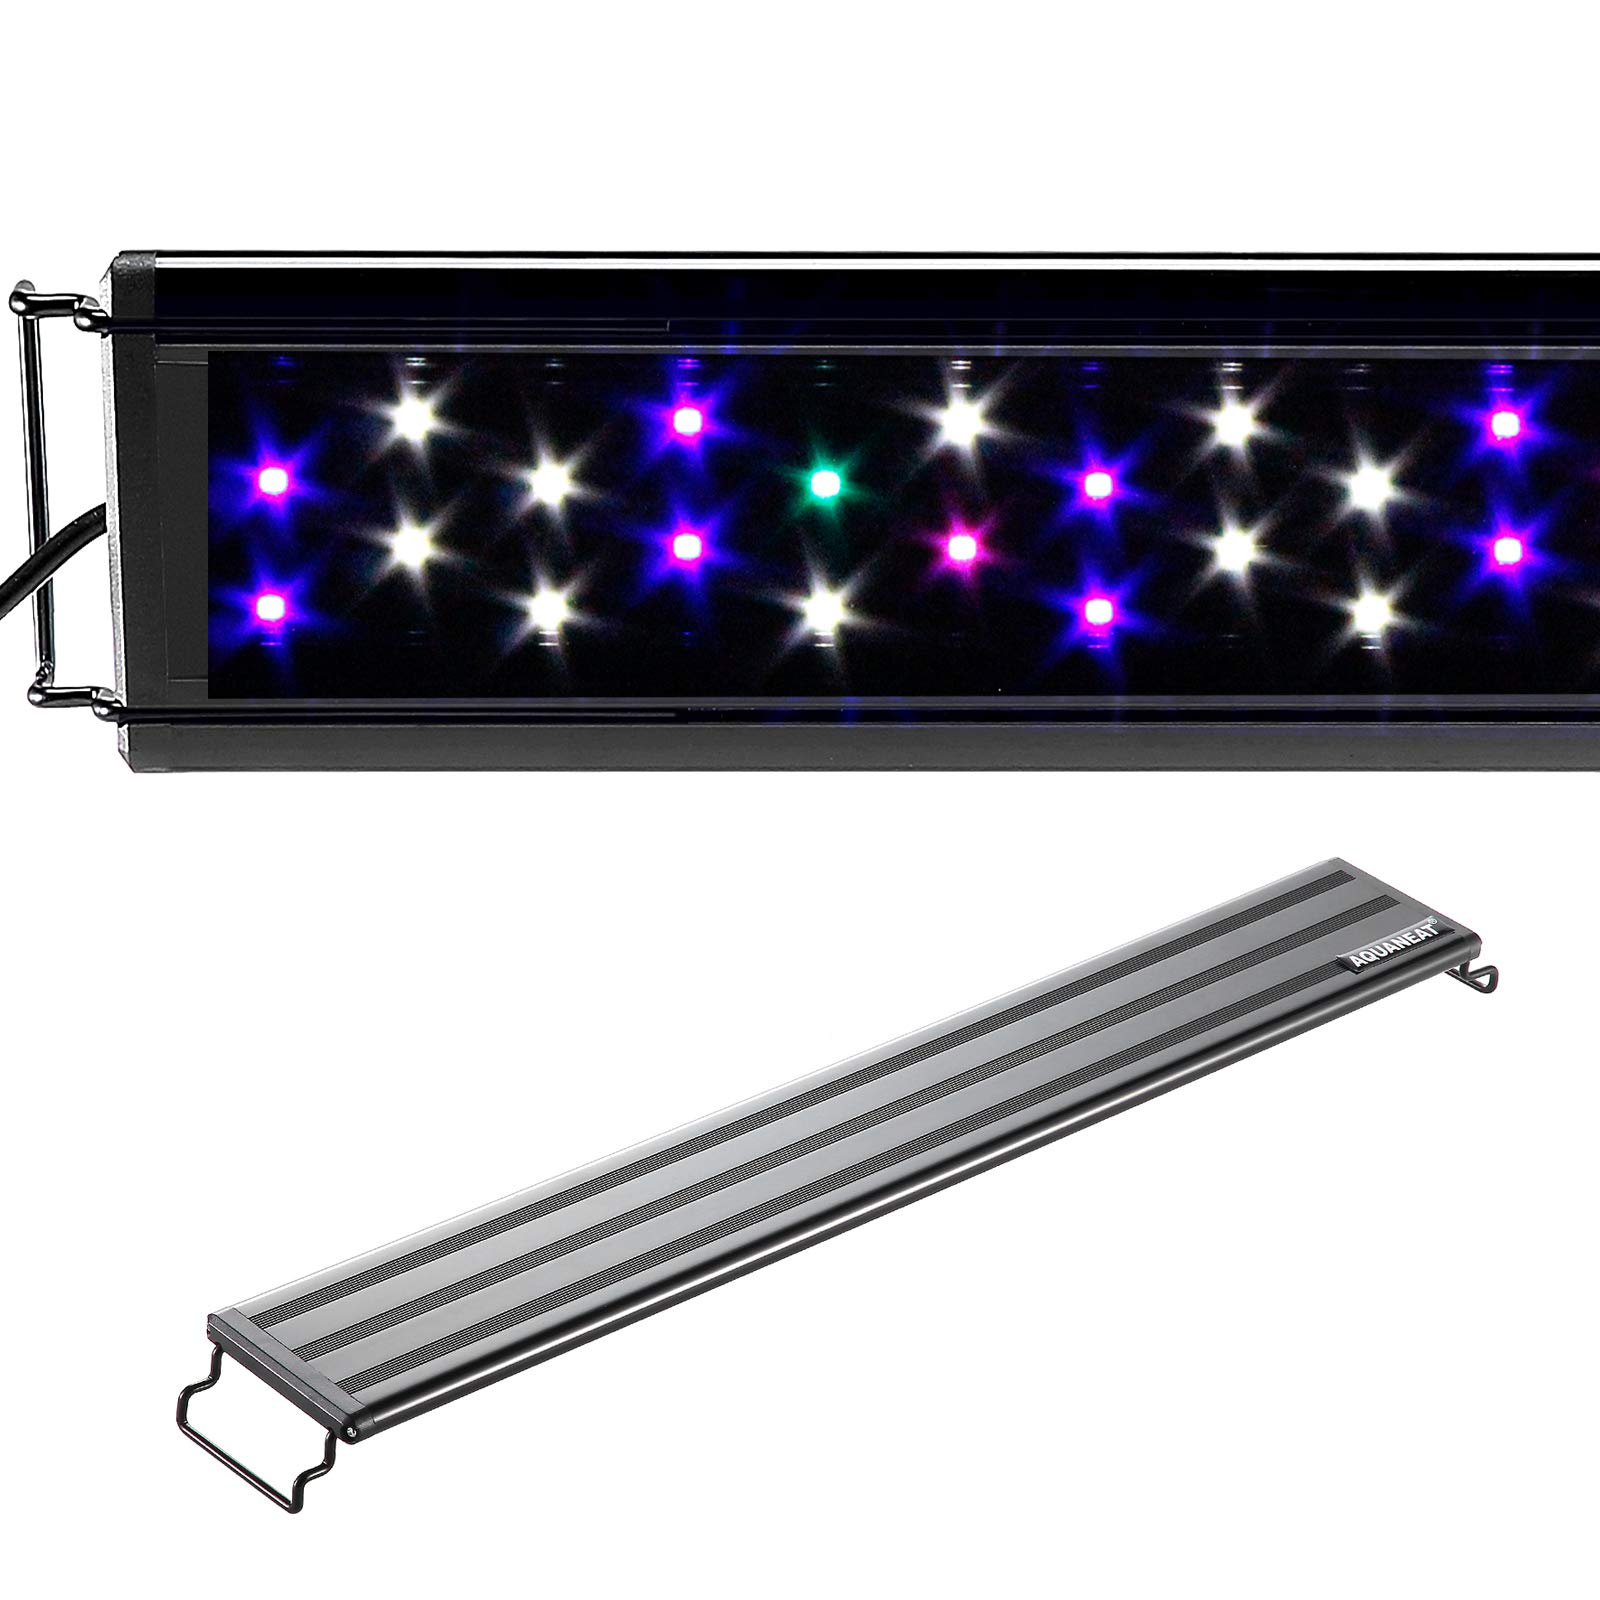 Aquaneat Aquarium Light Full Spectrum Fish Tank Light Multi-Color LED Marine FOWLR (19''-24'')